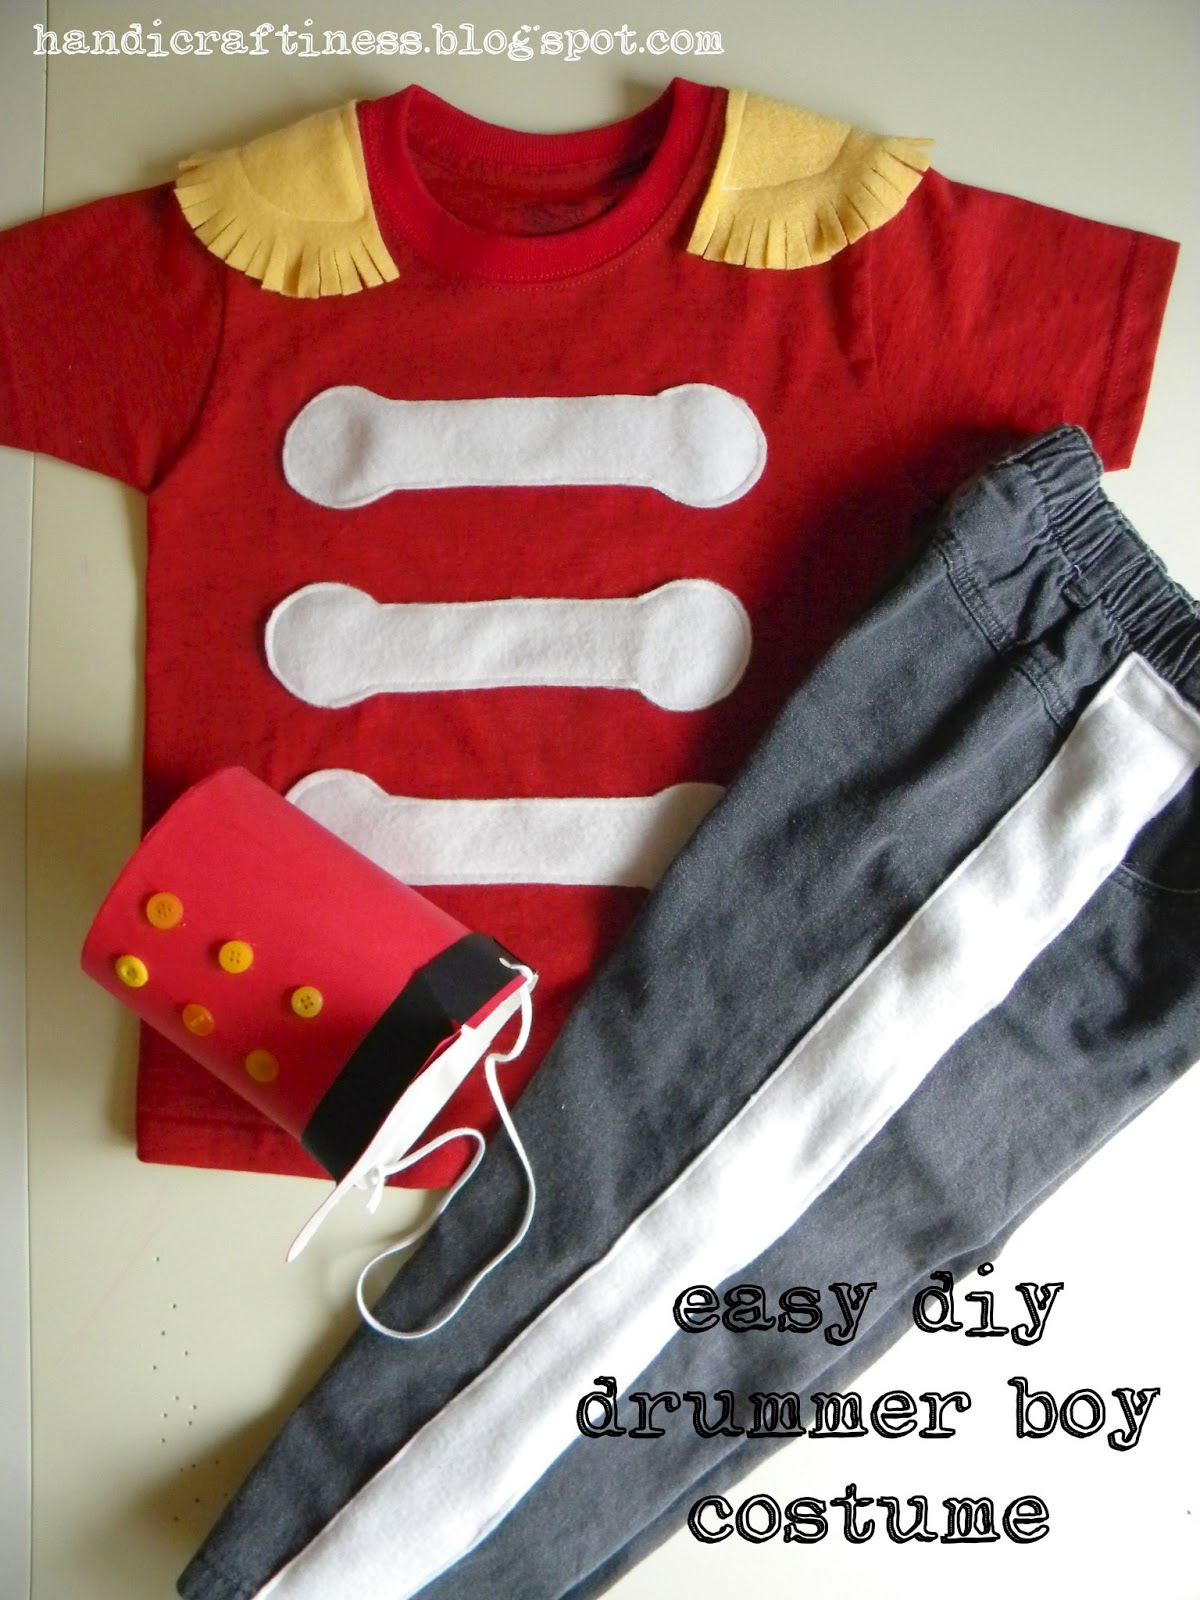 The pretty kitty studio an easy diy drummer boy costume an easy diy drummer boy costume solutioingenieria Images